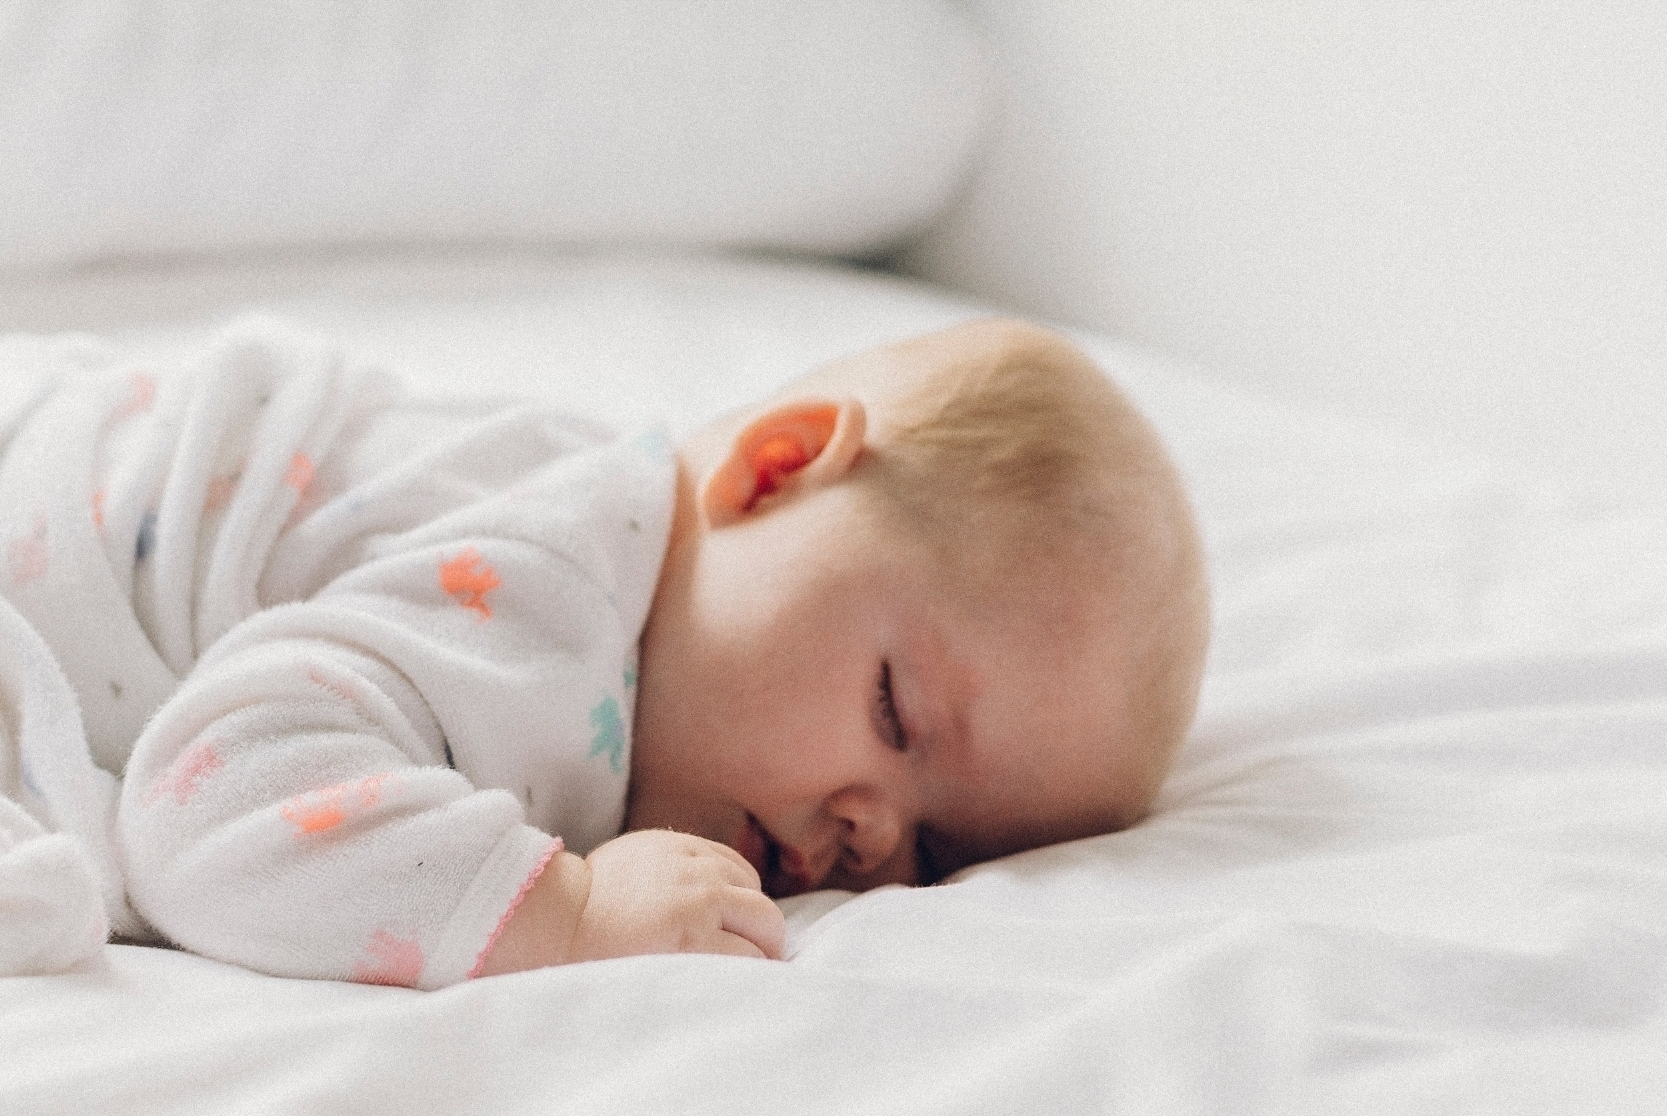 Is it better to have baby sleep on their tummy or their back? -